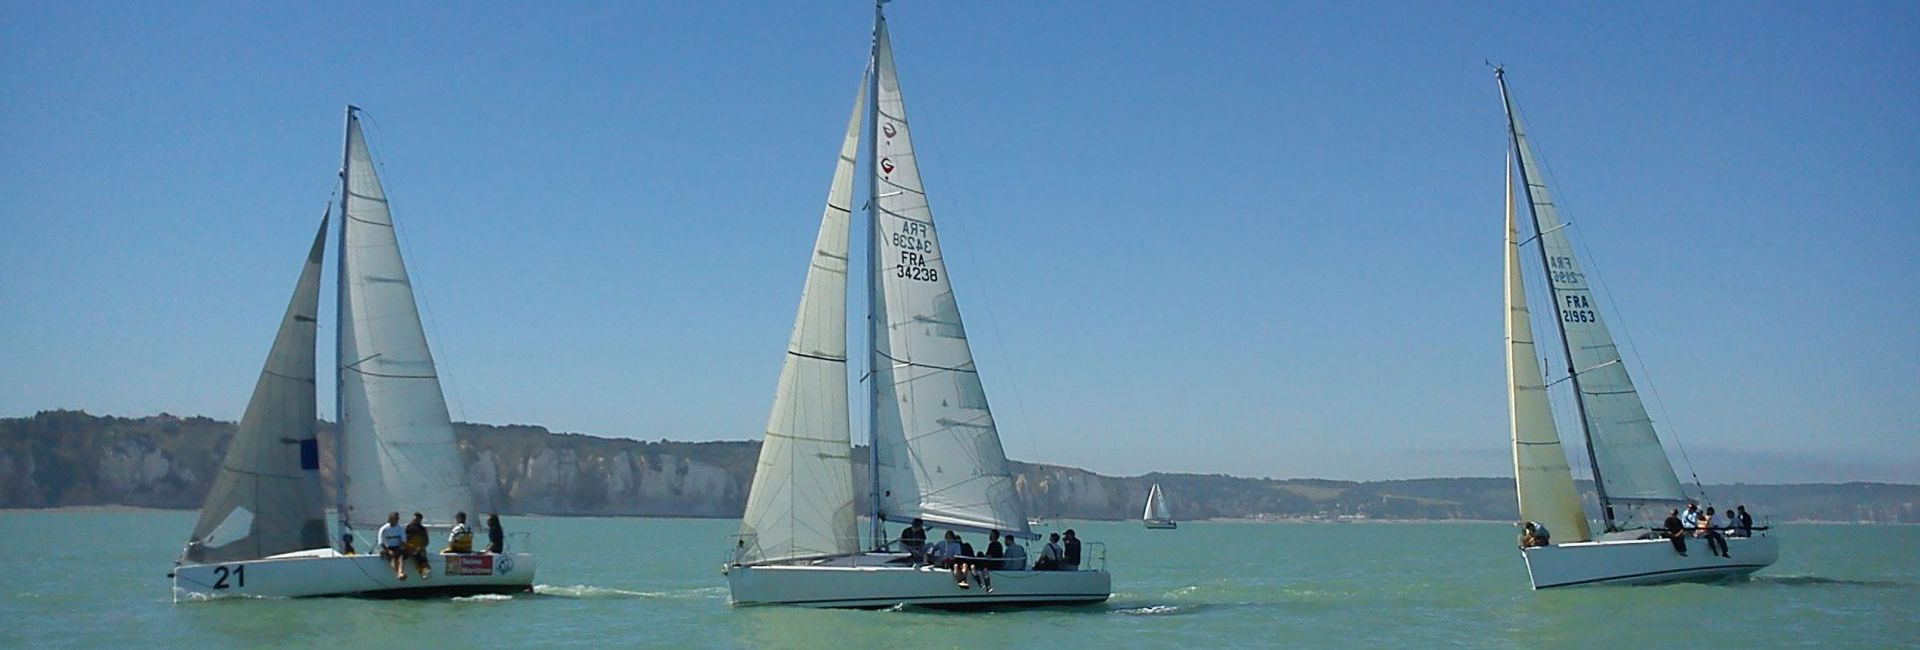 Sailing in Dieppe